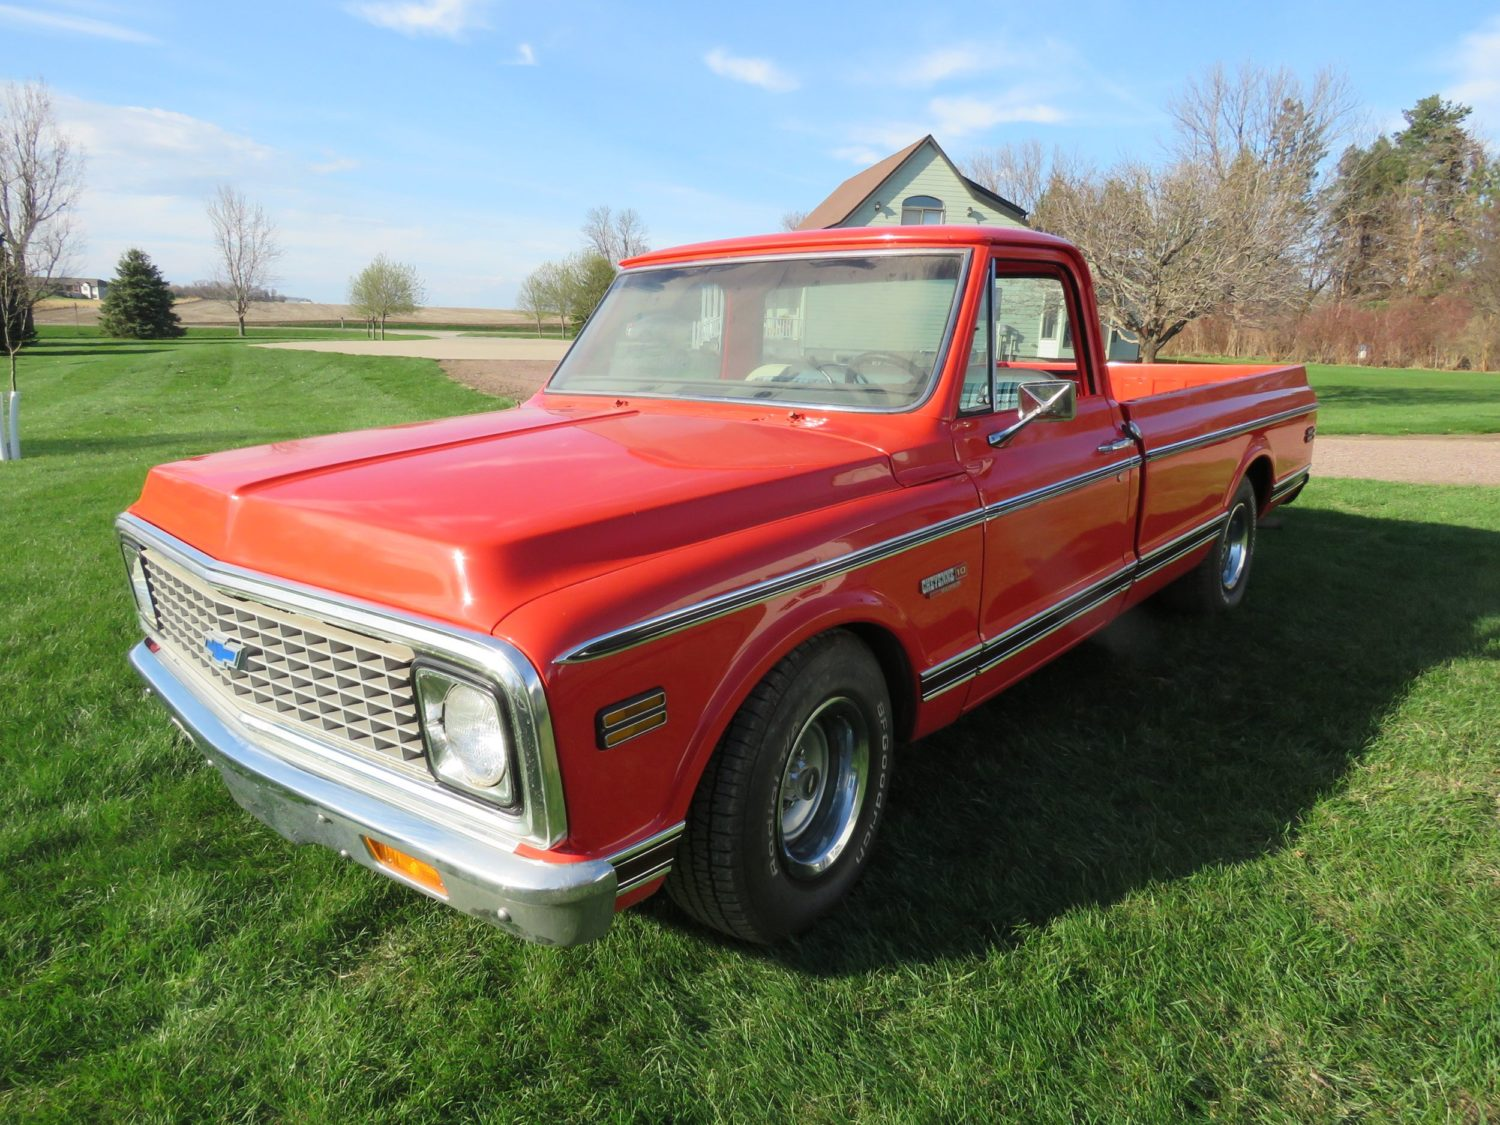 Chevrolet Pickups & C-10/20 Parts, Chevelle, & More Collector Vehicles- The Larry Zuraff Collection - image 4